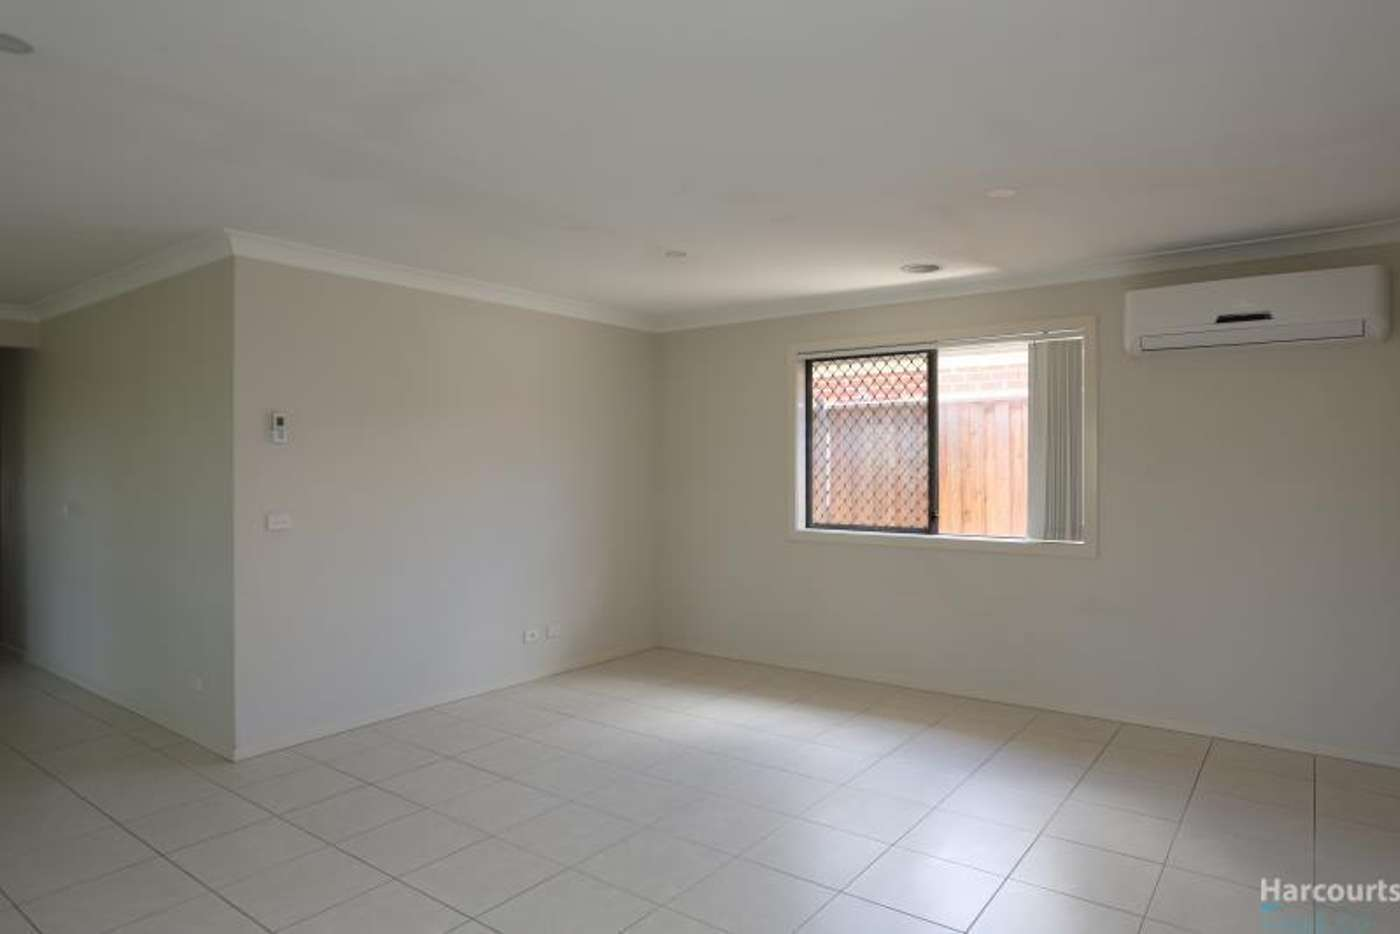 Sixth view of Homely house listing, 122 Eminence Boulevard, Doreen VIC 3754